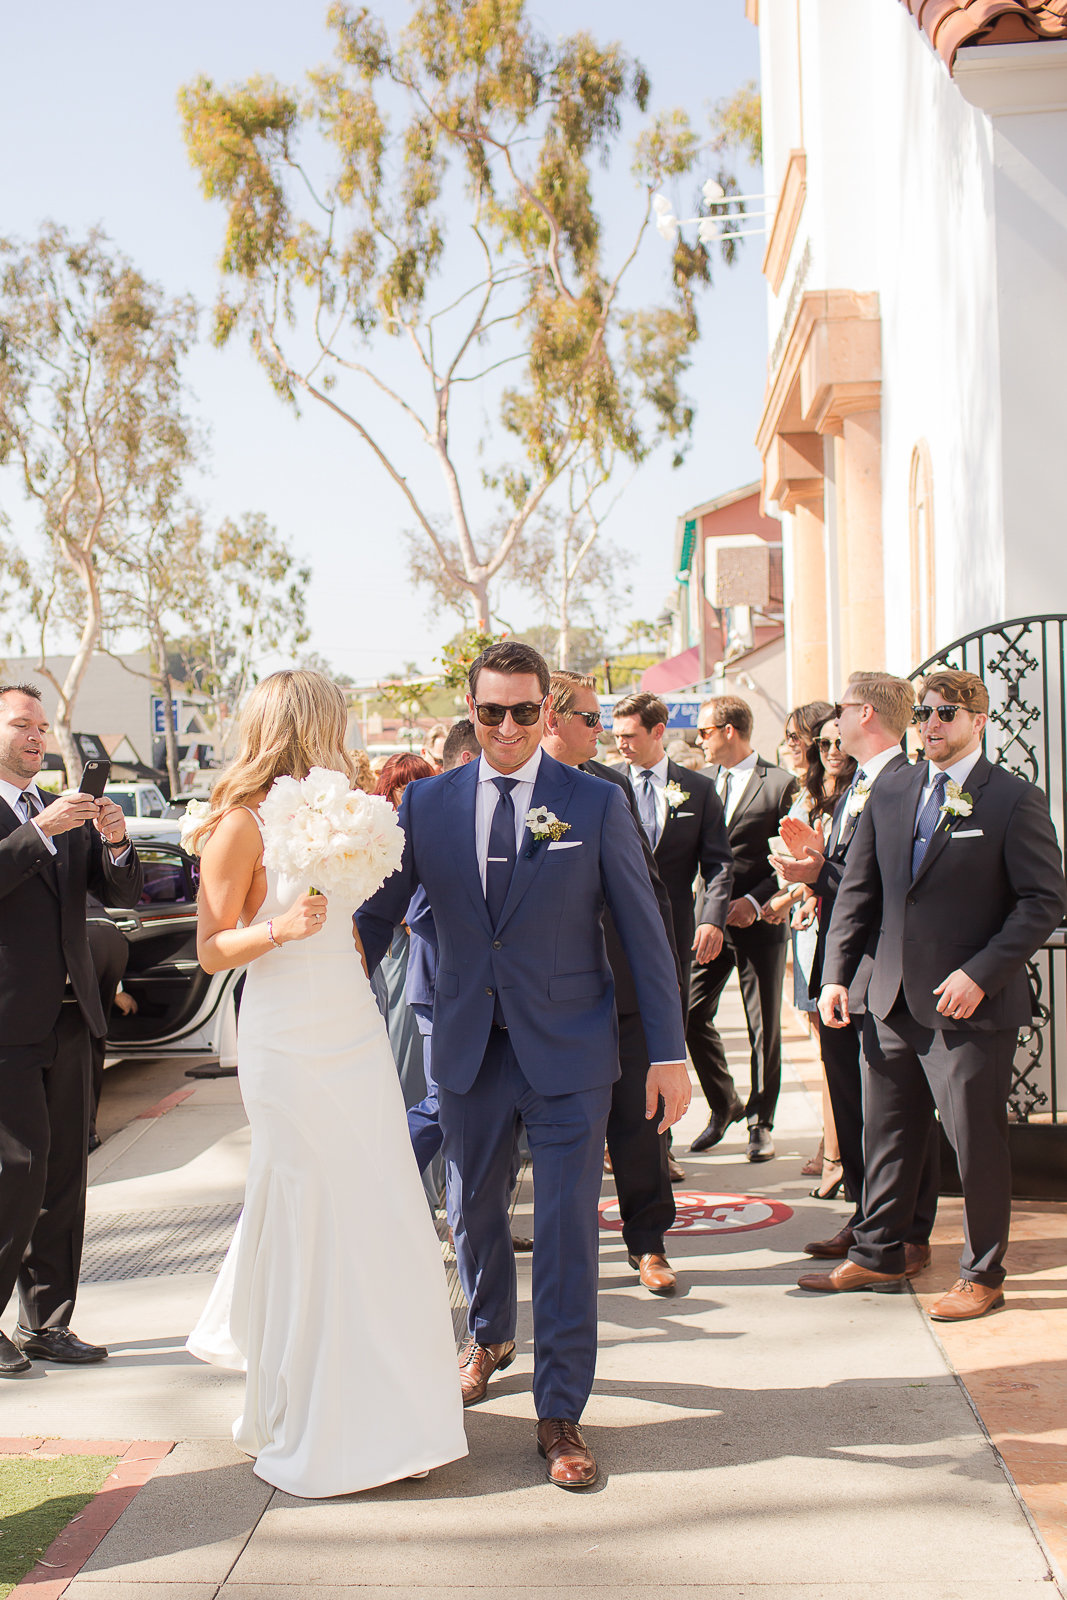 Newport Beach Caliornia Destination Wedding Theresa Bridget Photography-42